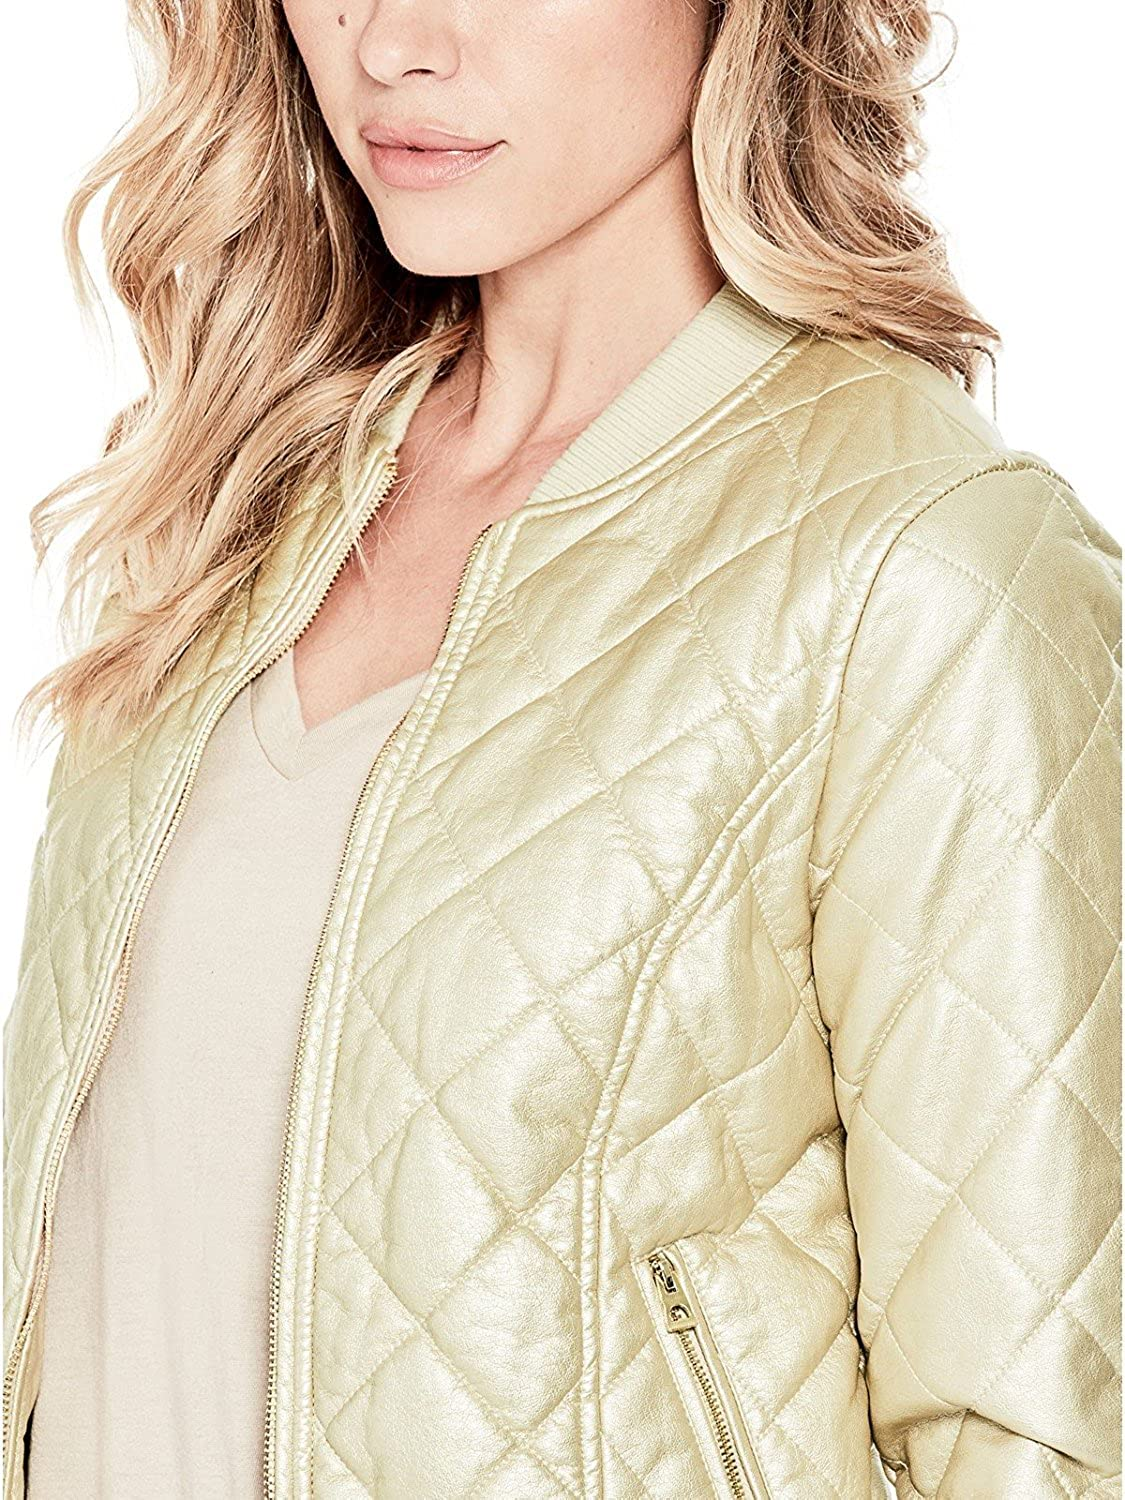 Babubala Stylish;Pretty Women's Geena FauxLeather Bomber Jacket